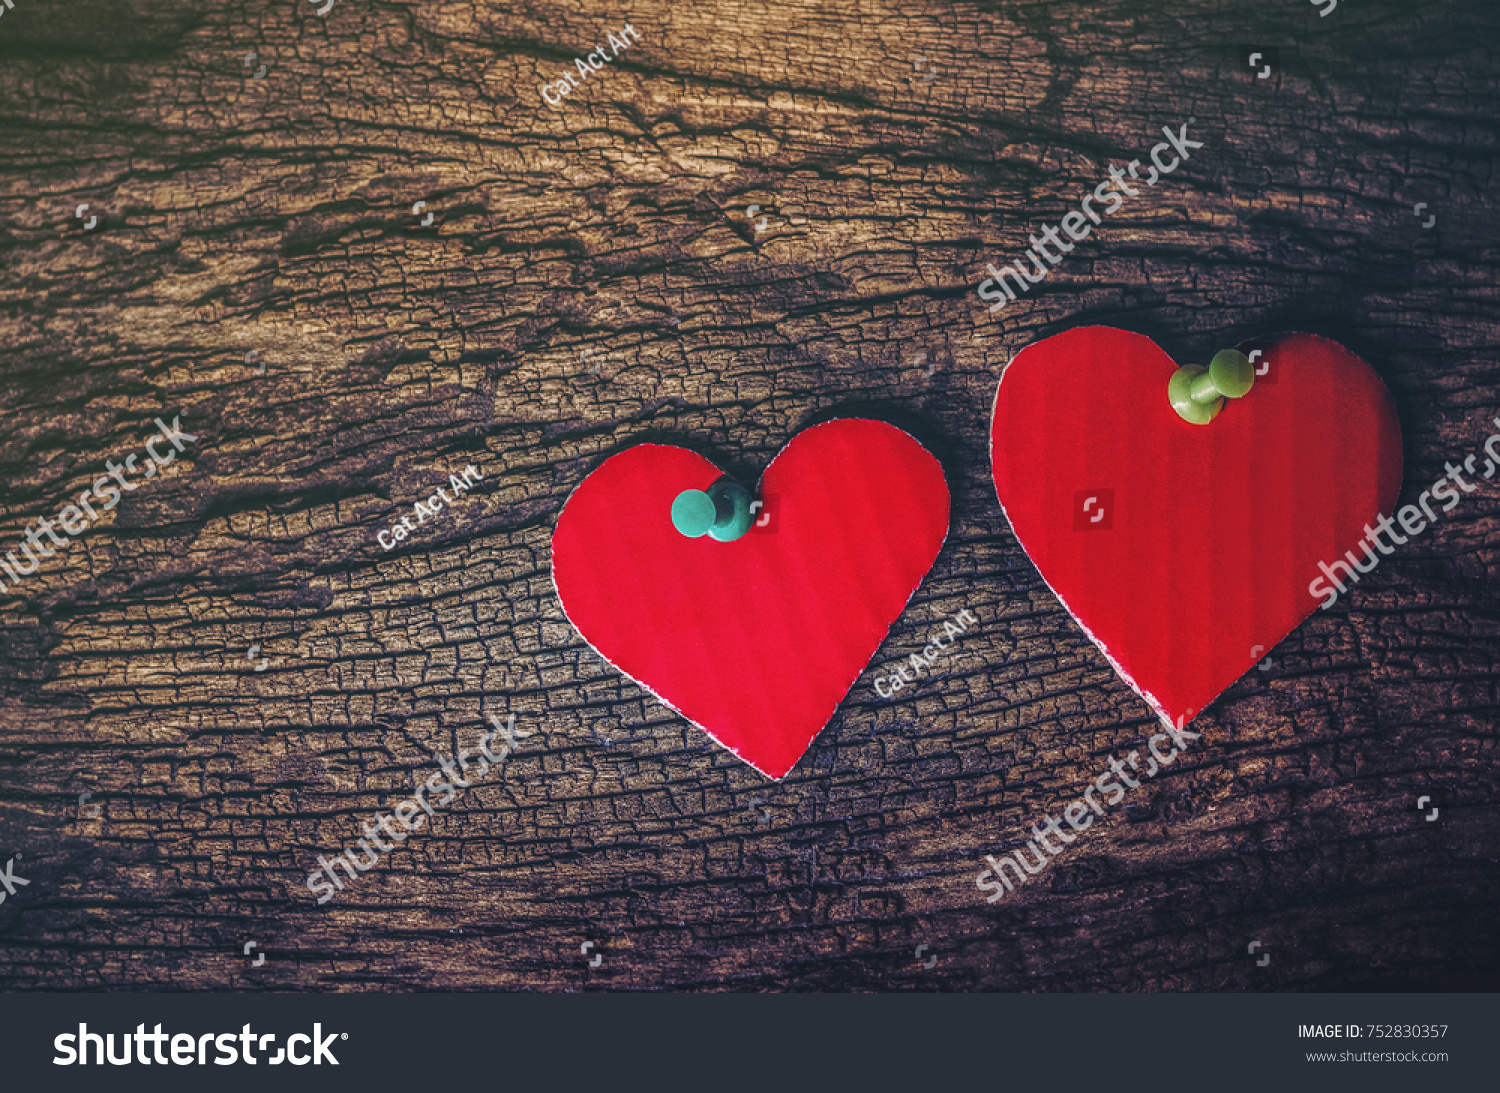 Love Concept Positive Energy Symbols With Two Heart Shaped Paper